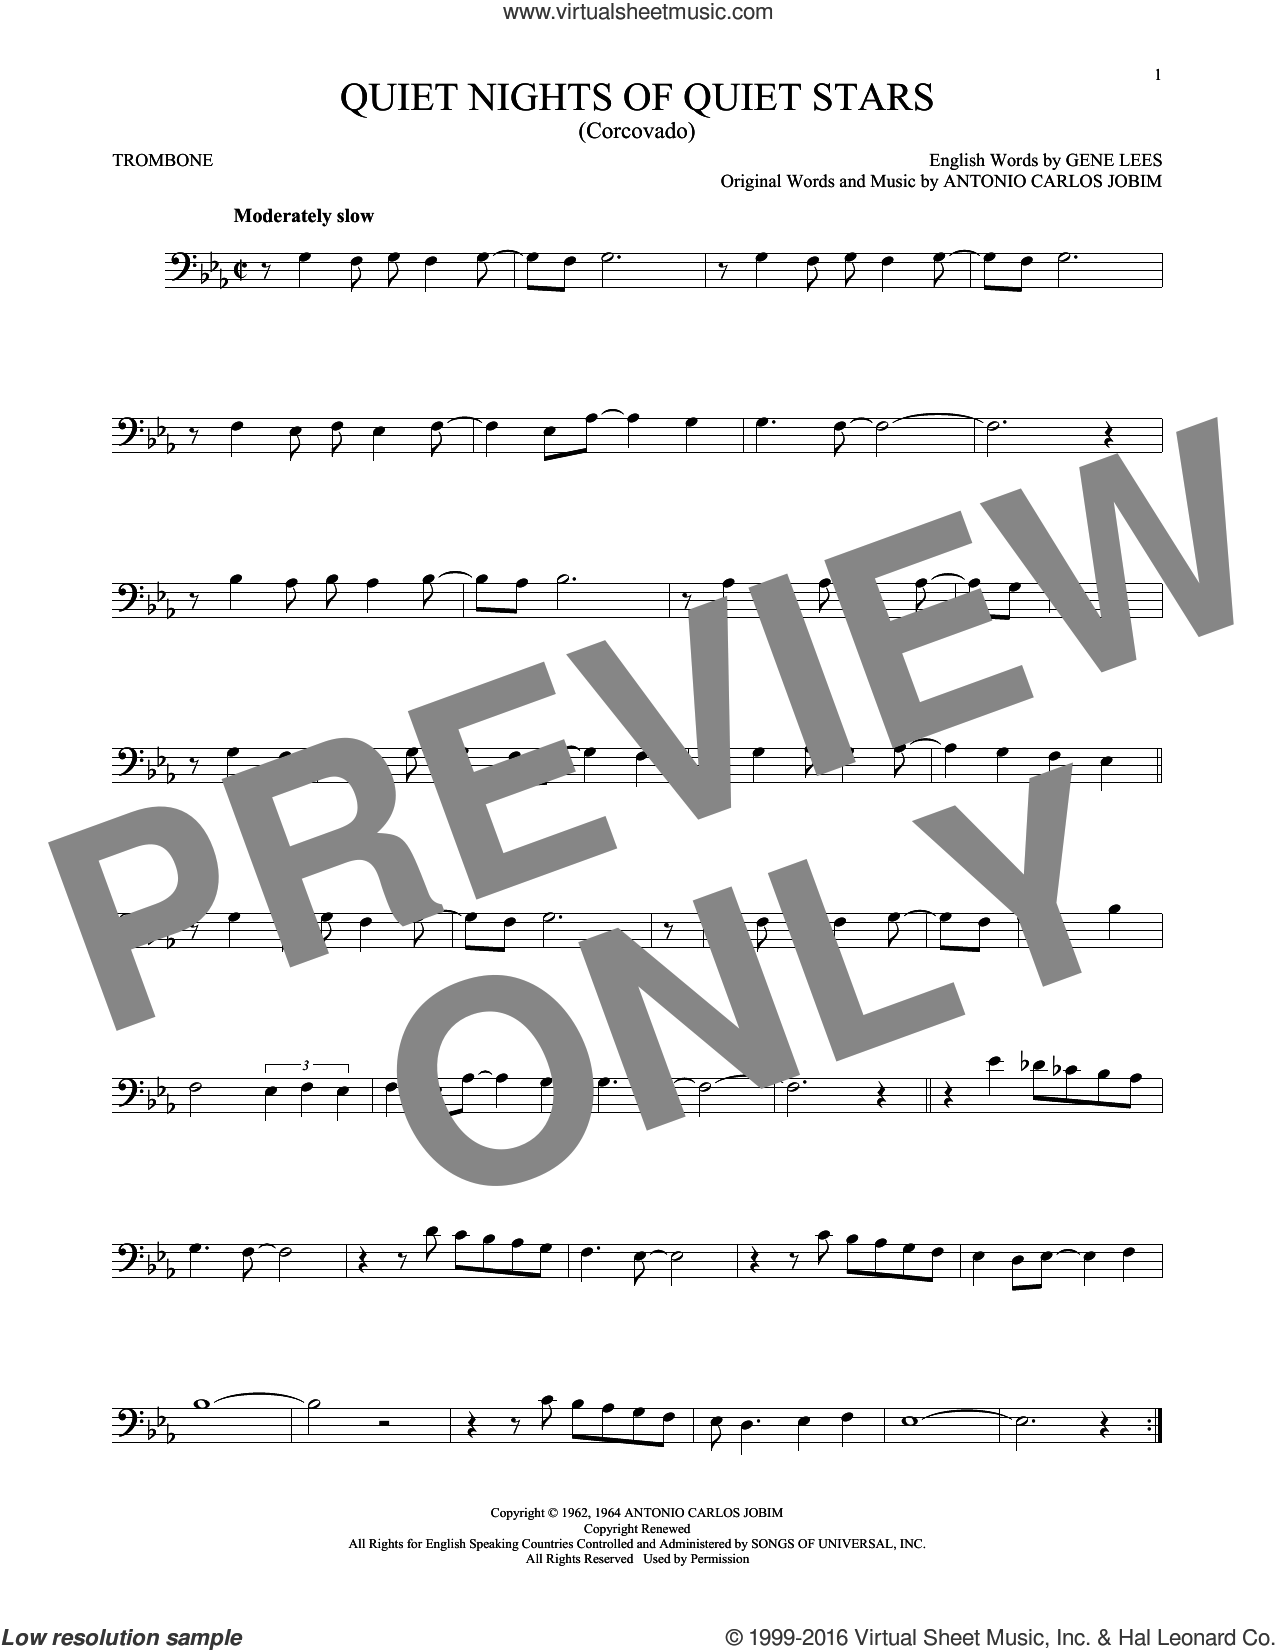 Quiet Nights Of Quiet Stars (Corcovado) sheet music for trombone solo by Andy Williams and Antonio Carlos Jobim. Score Image Preview.